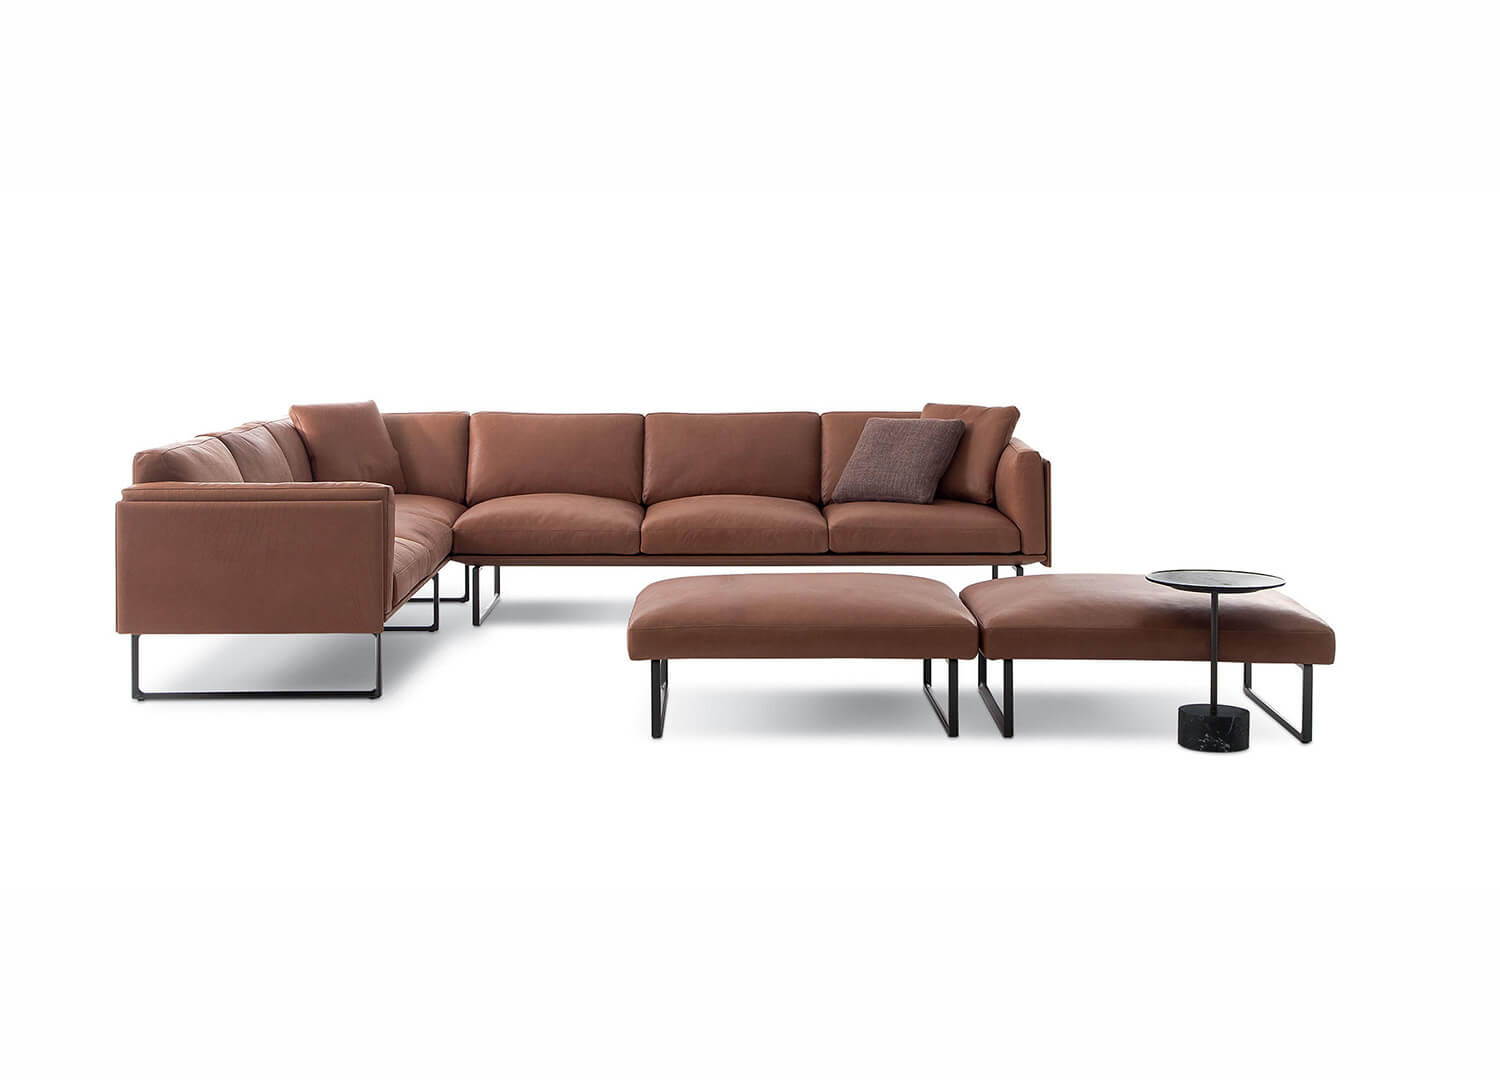 202 8 Sofa Space Furniture